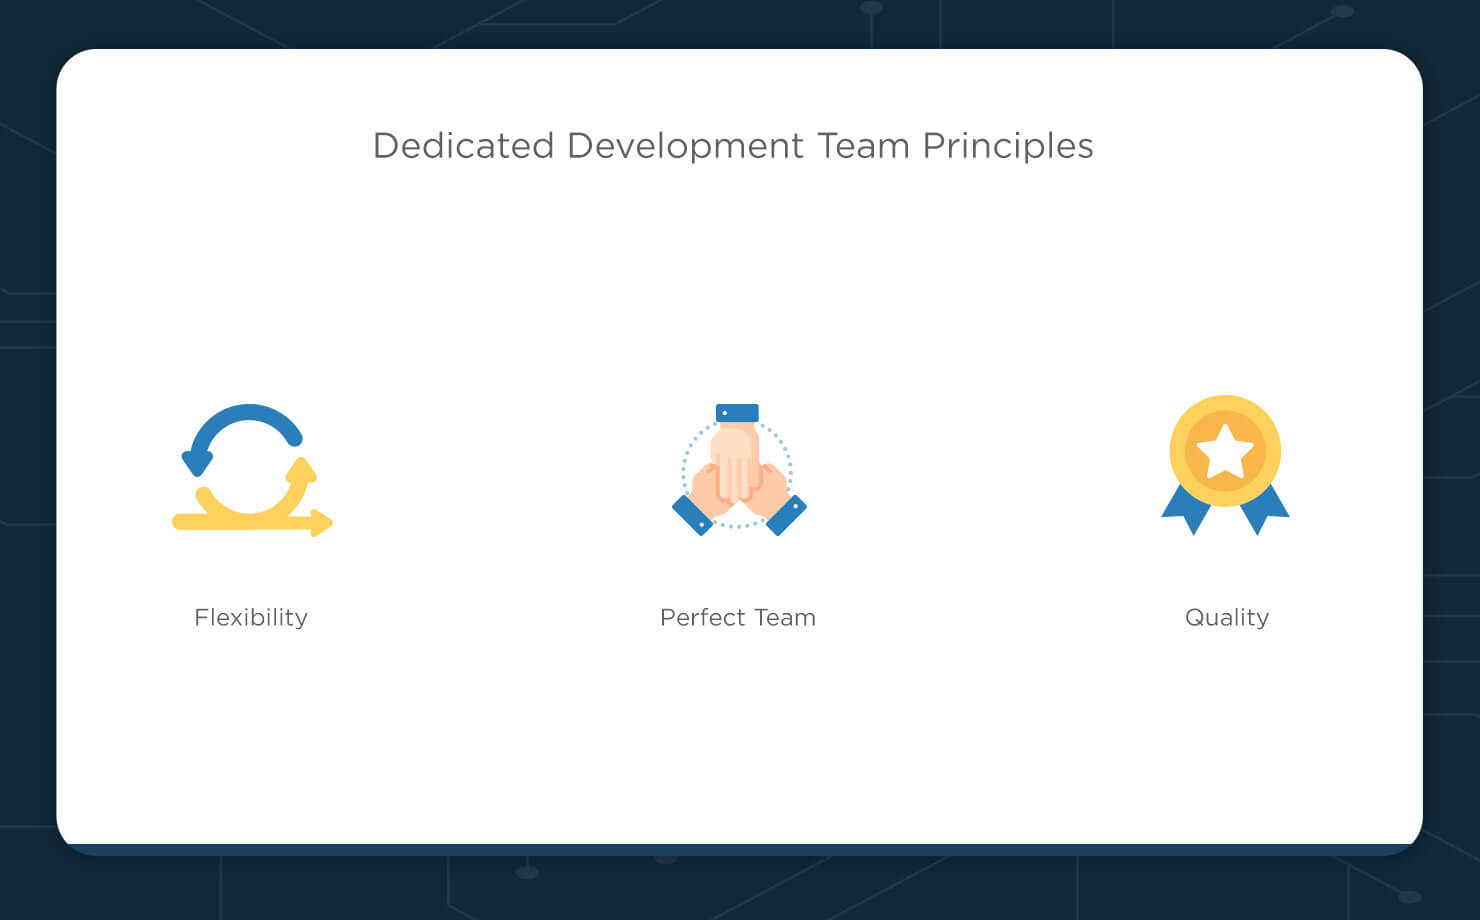 dedicated team principles